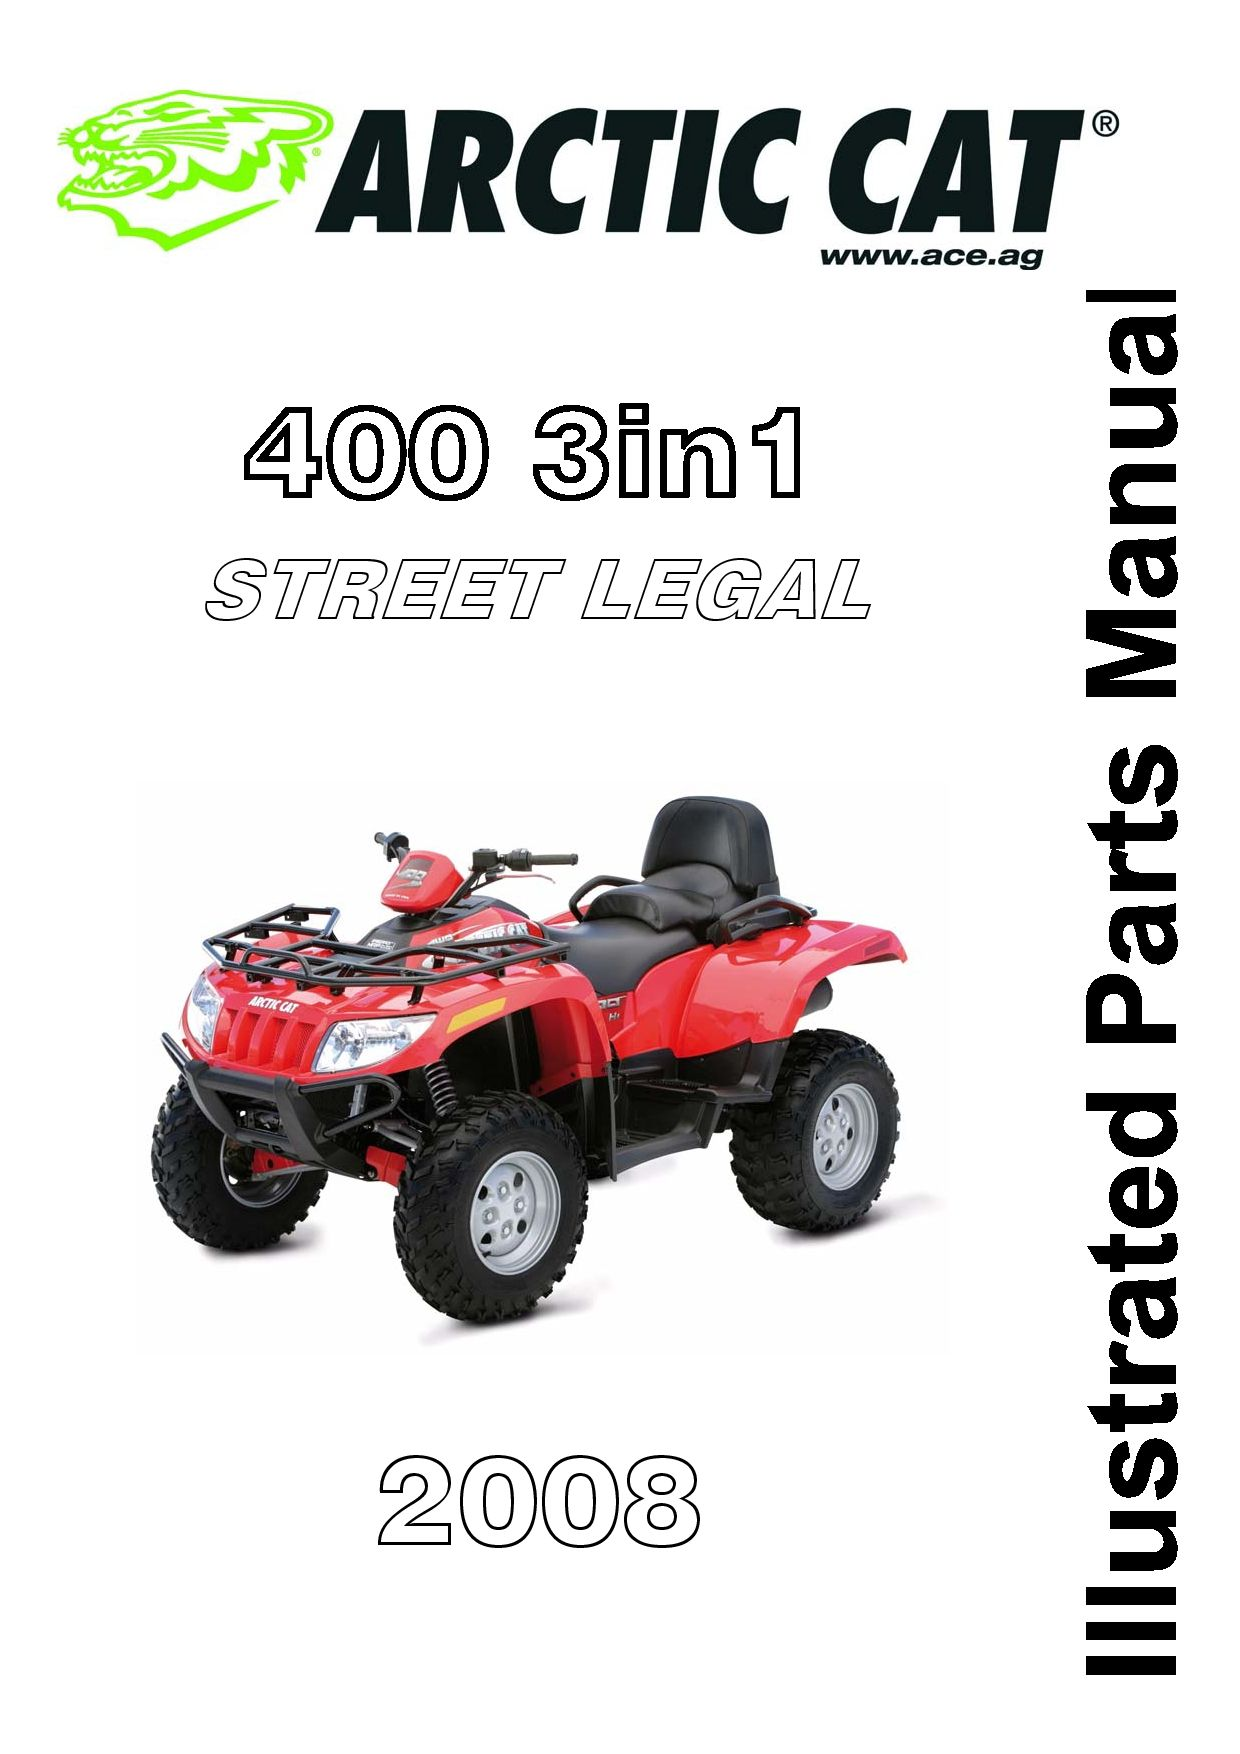 ARCTIC CAT 2008 400 TRV (3in1) Street Legal part manual